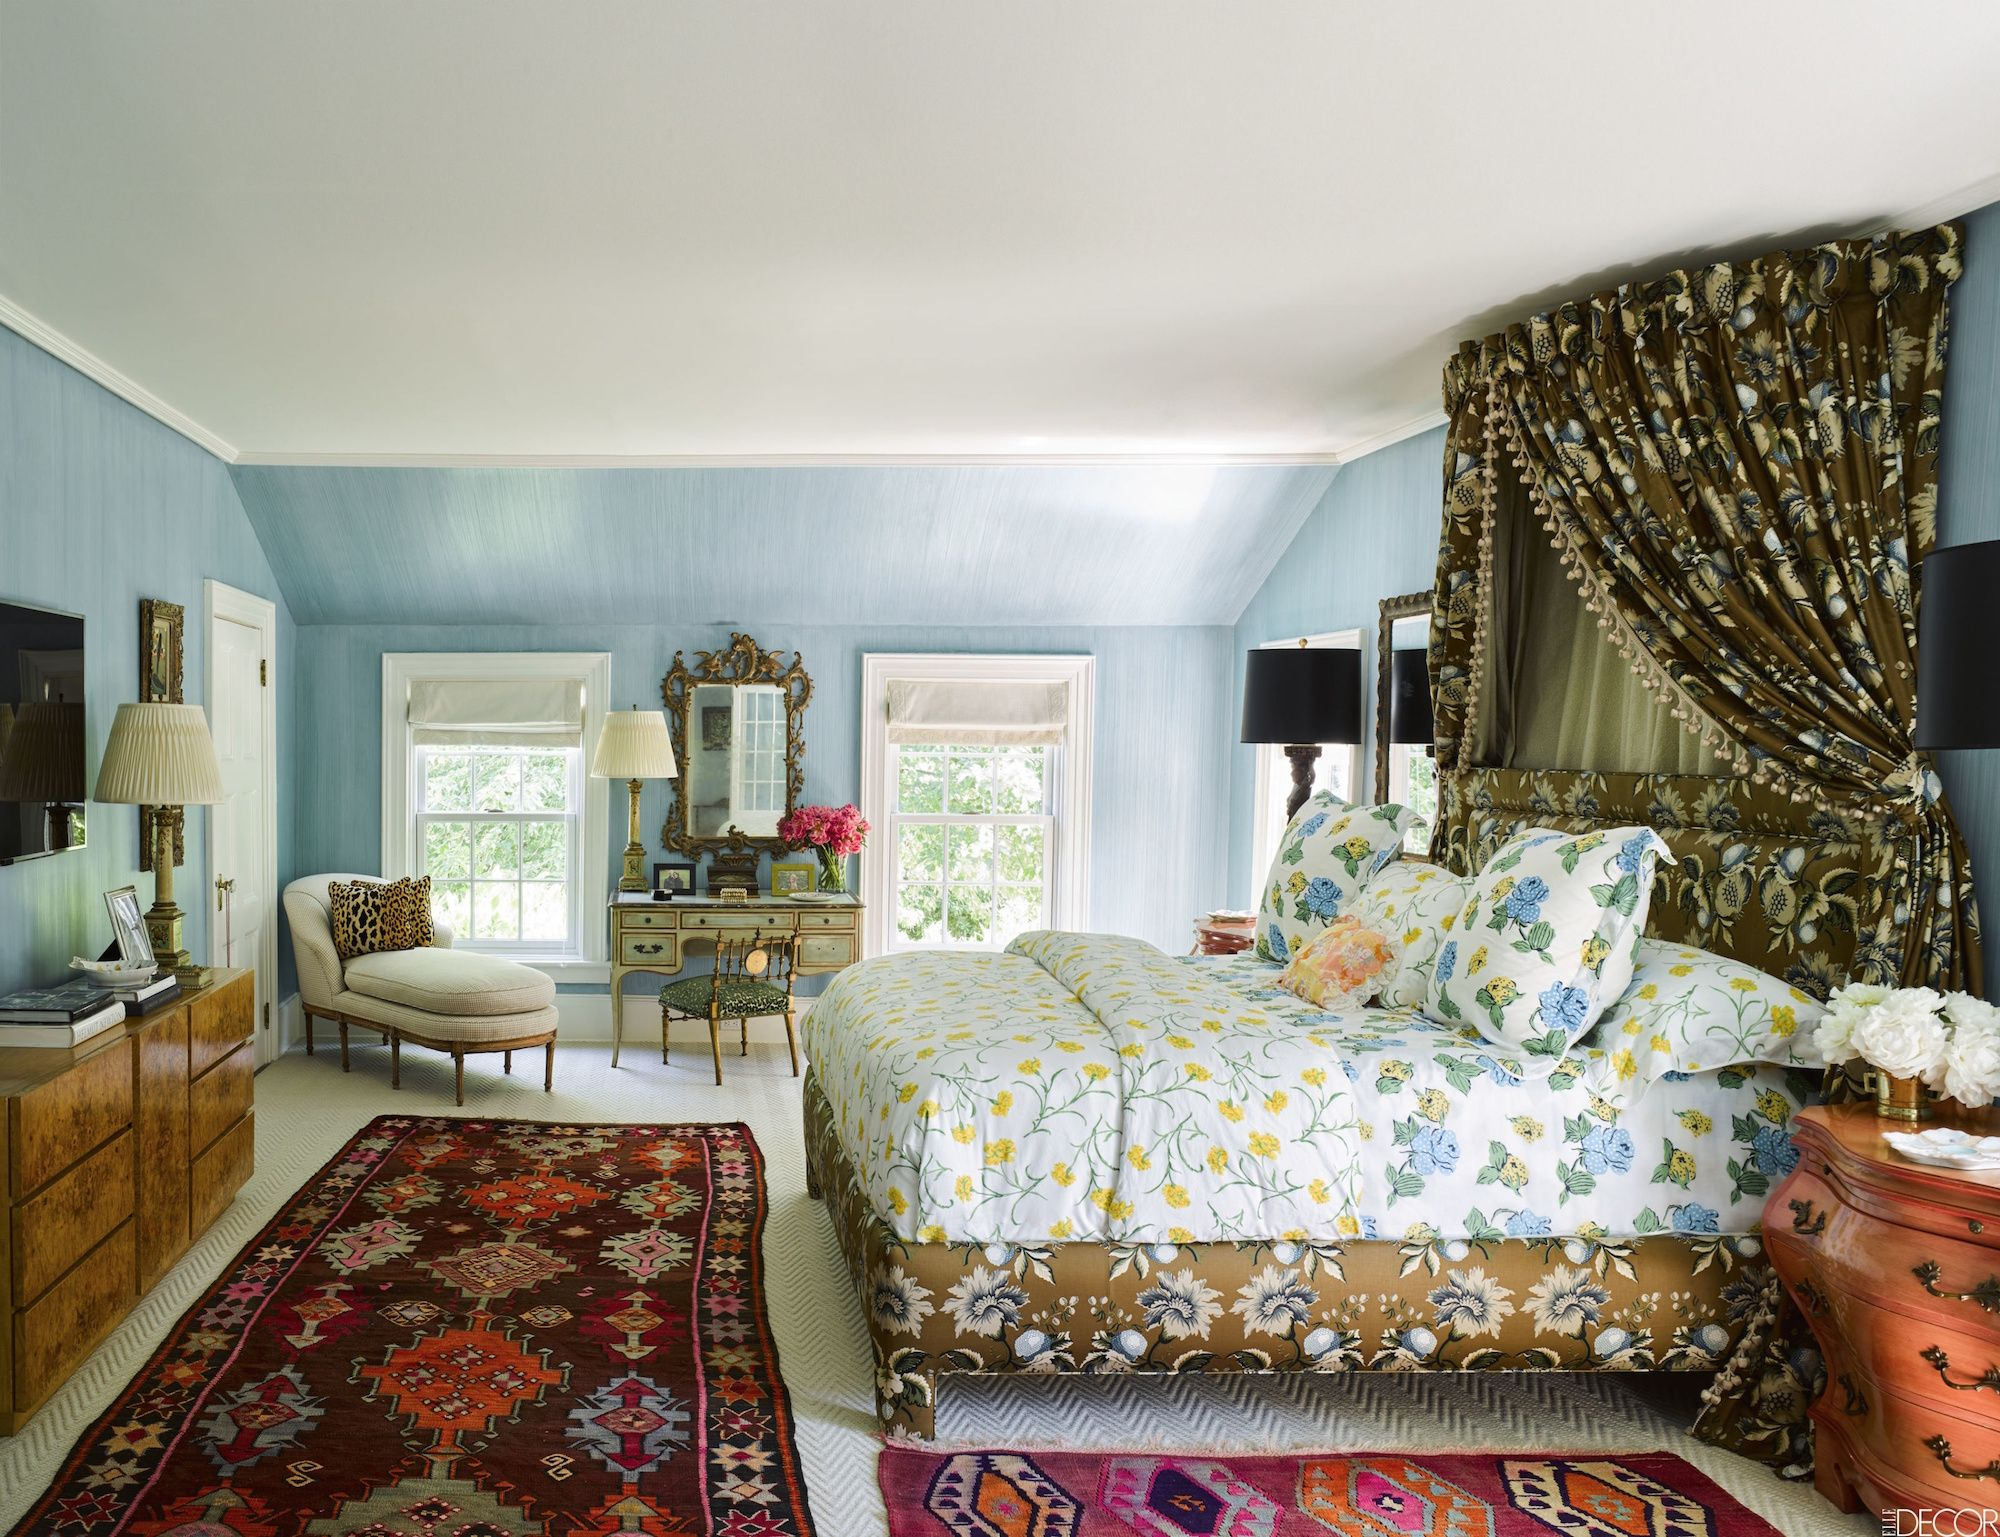 Best Blue Bedrooms - Blue Room Ideas Palm Beach Bedroom Decorating Tips Html on